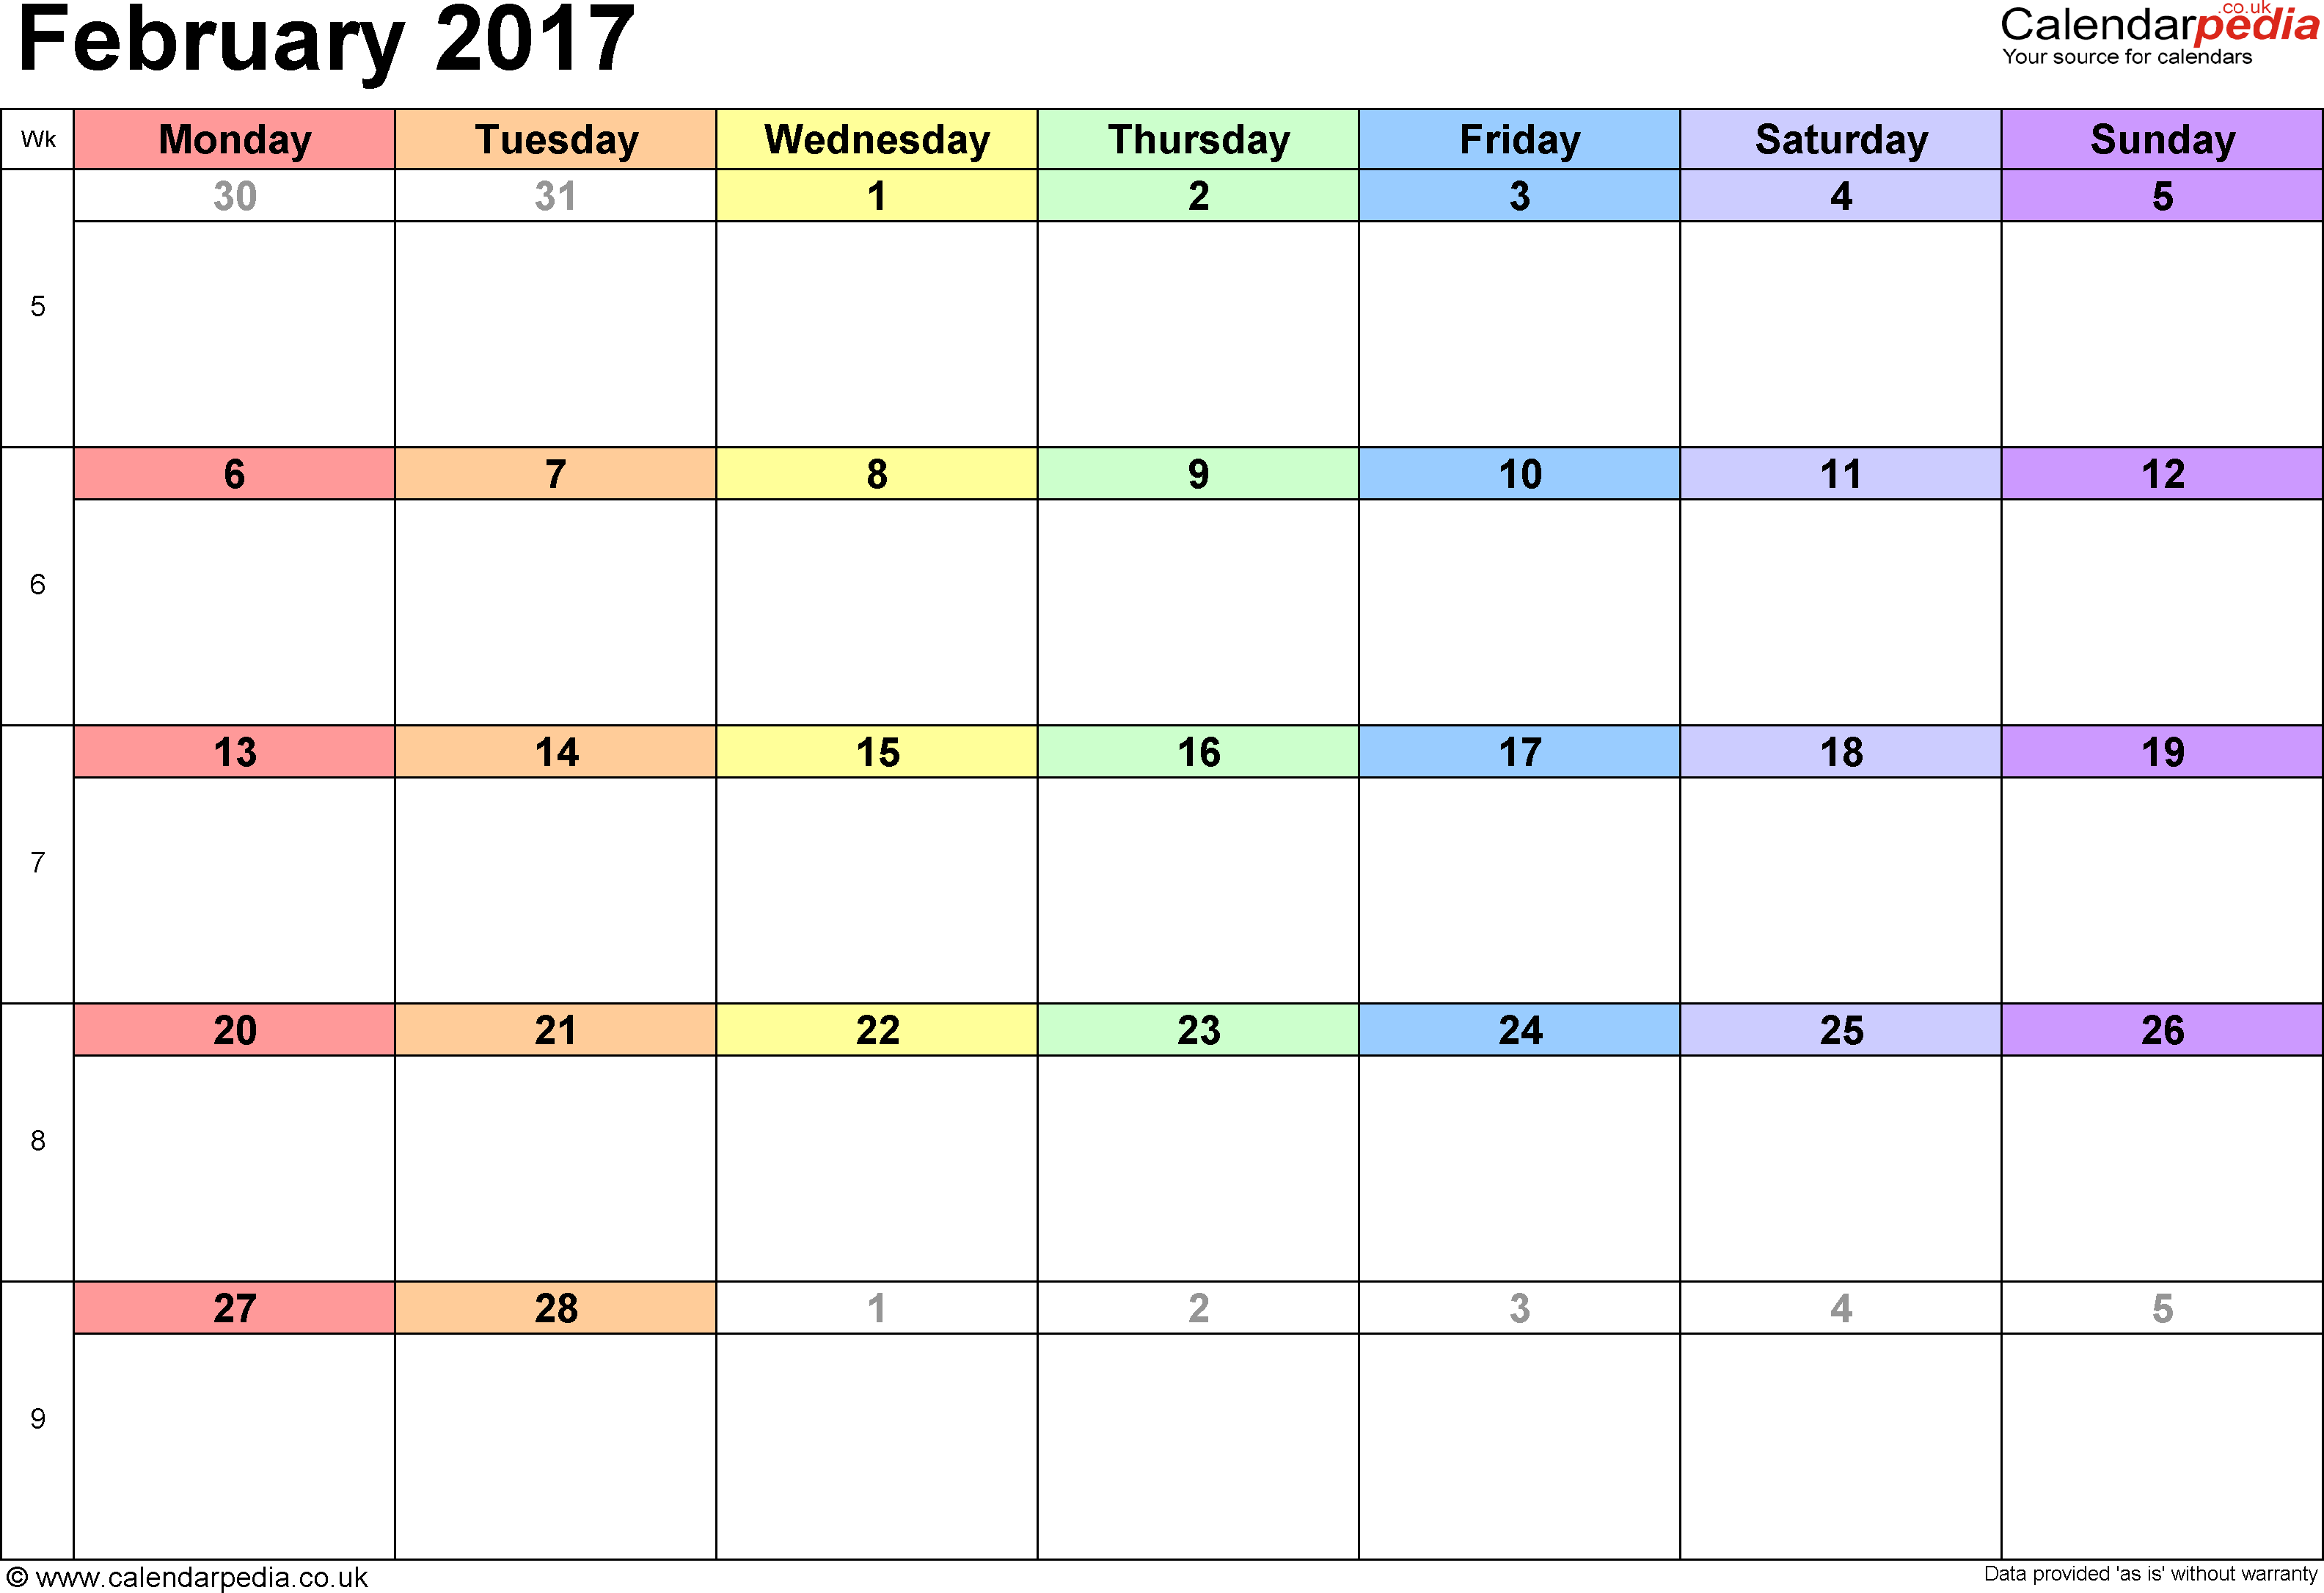 February 2017 Calendars for Word, Excel & PDF